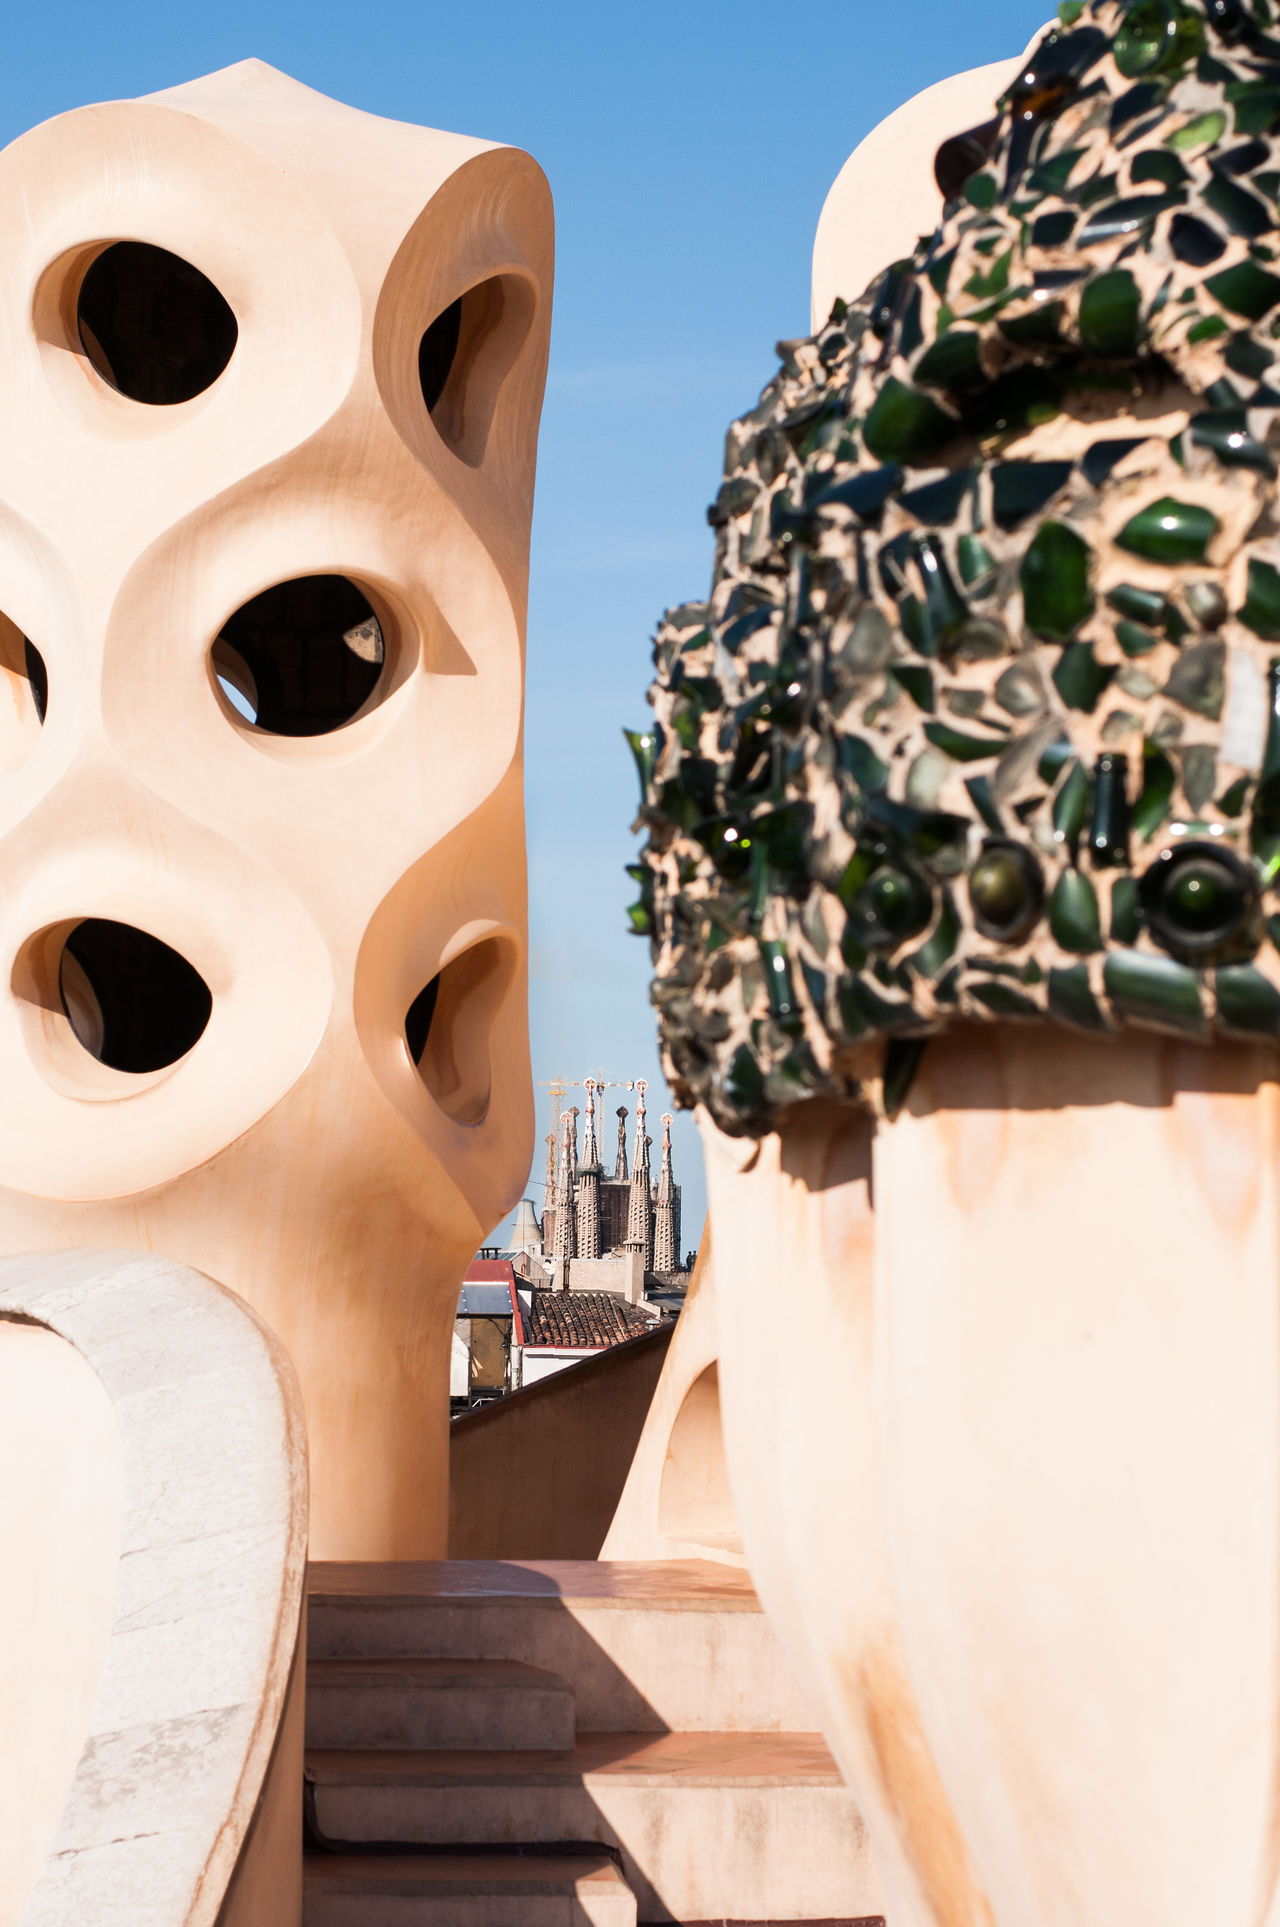 Archilovers Architectural Detail Architecture Building Exterior Built Structure Casa Mila ( La Pedrera ) Close-up Creative Day Eye4photography  EyeEm Gallery Fine Art Photography Gaudi History No People Outdoors Place Of Worship Religion Sky Spirituality Travel Travel Travel Destinations Travel Photography Urbanexploration